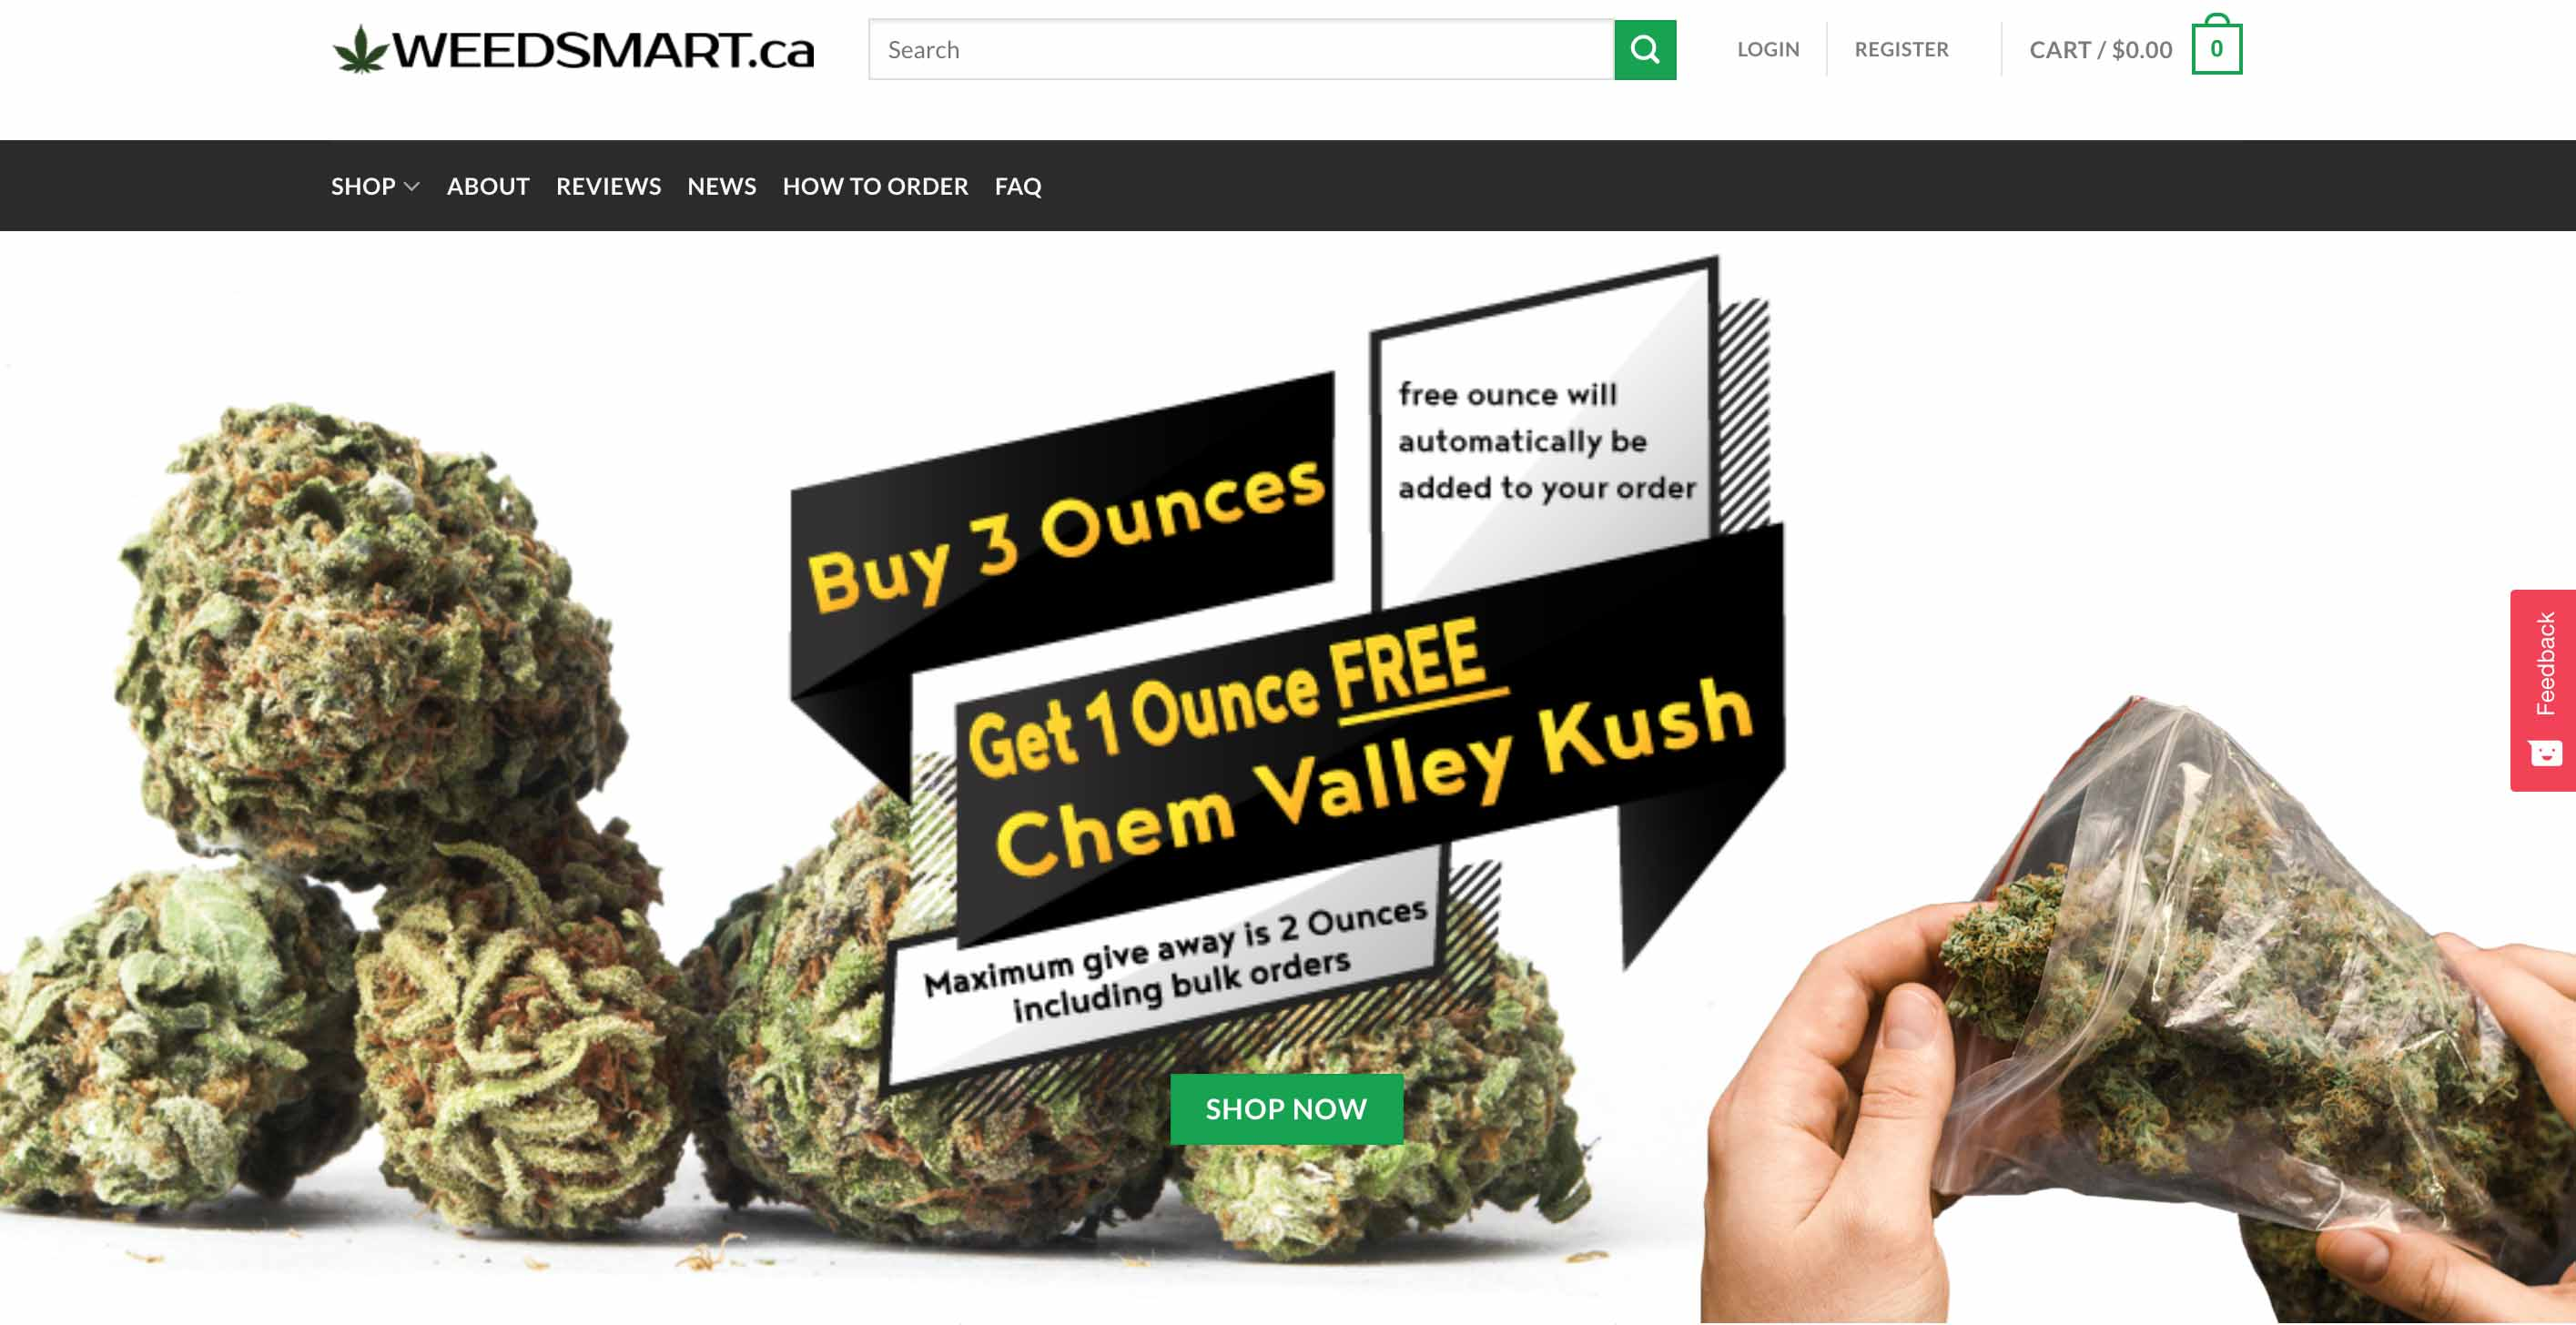 Weedsmart review and coupon code